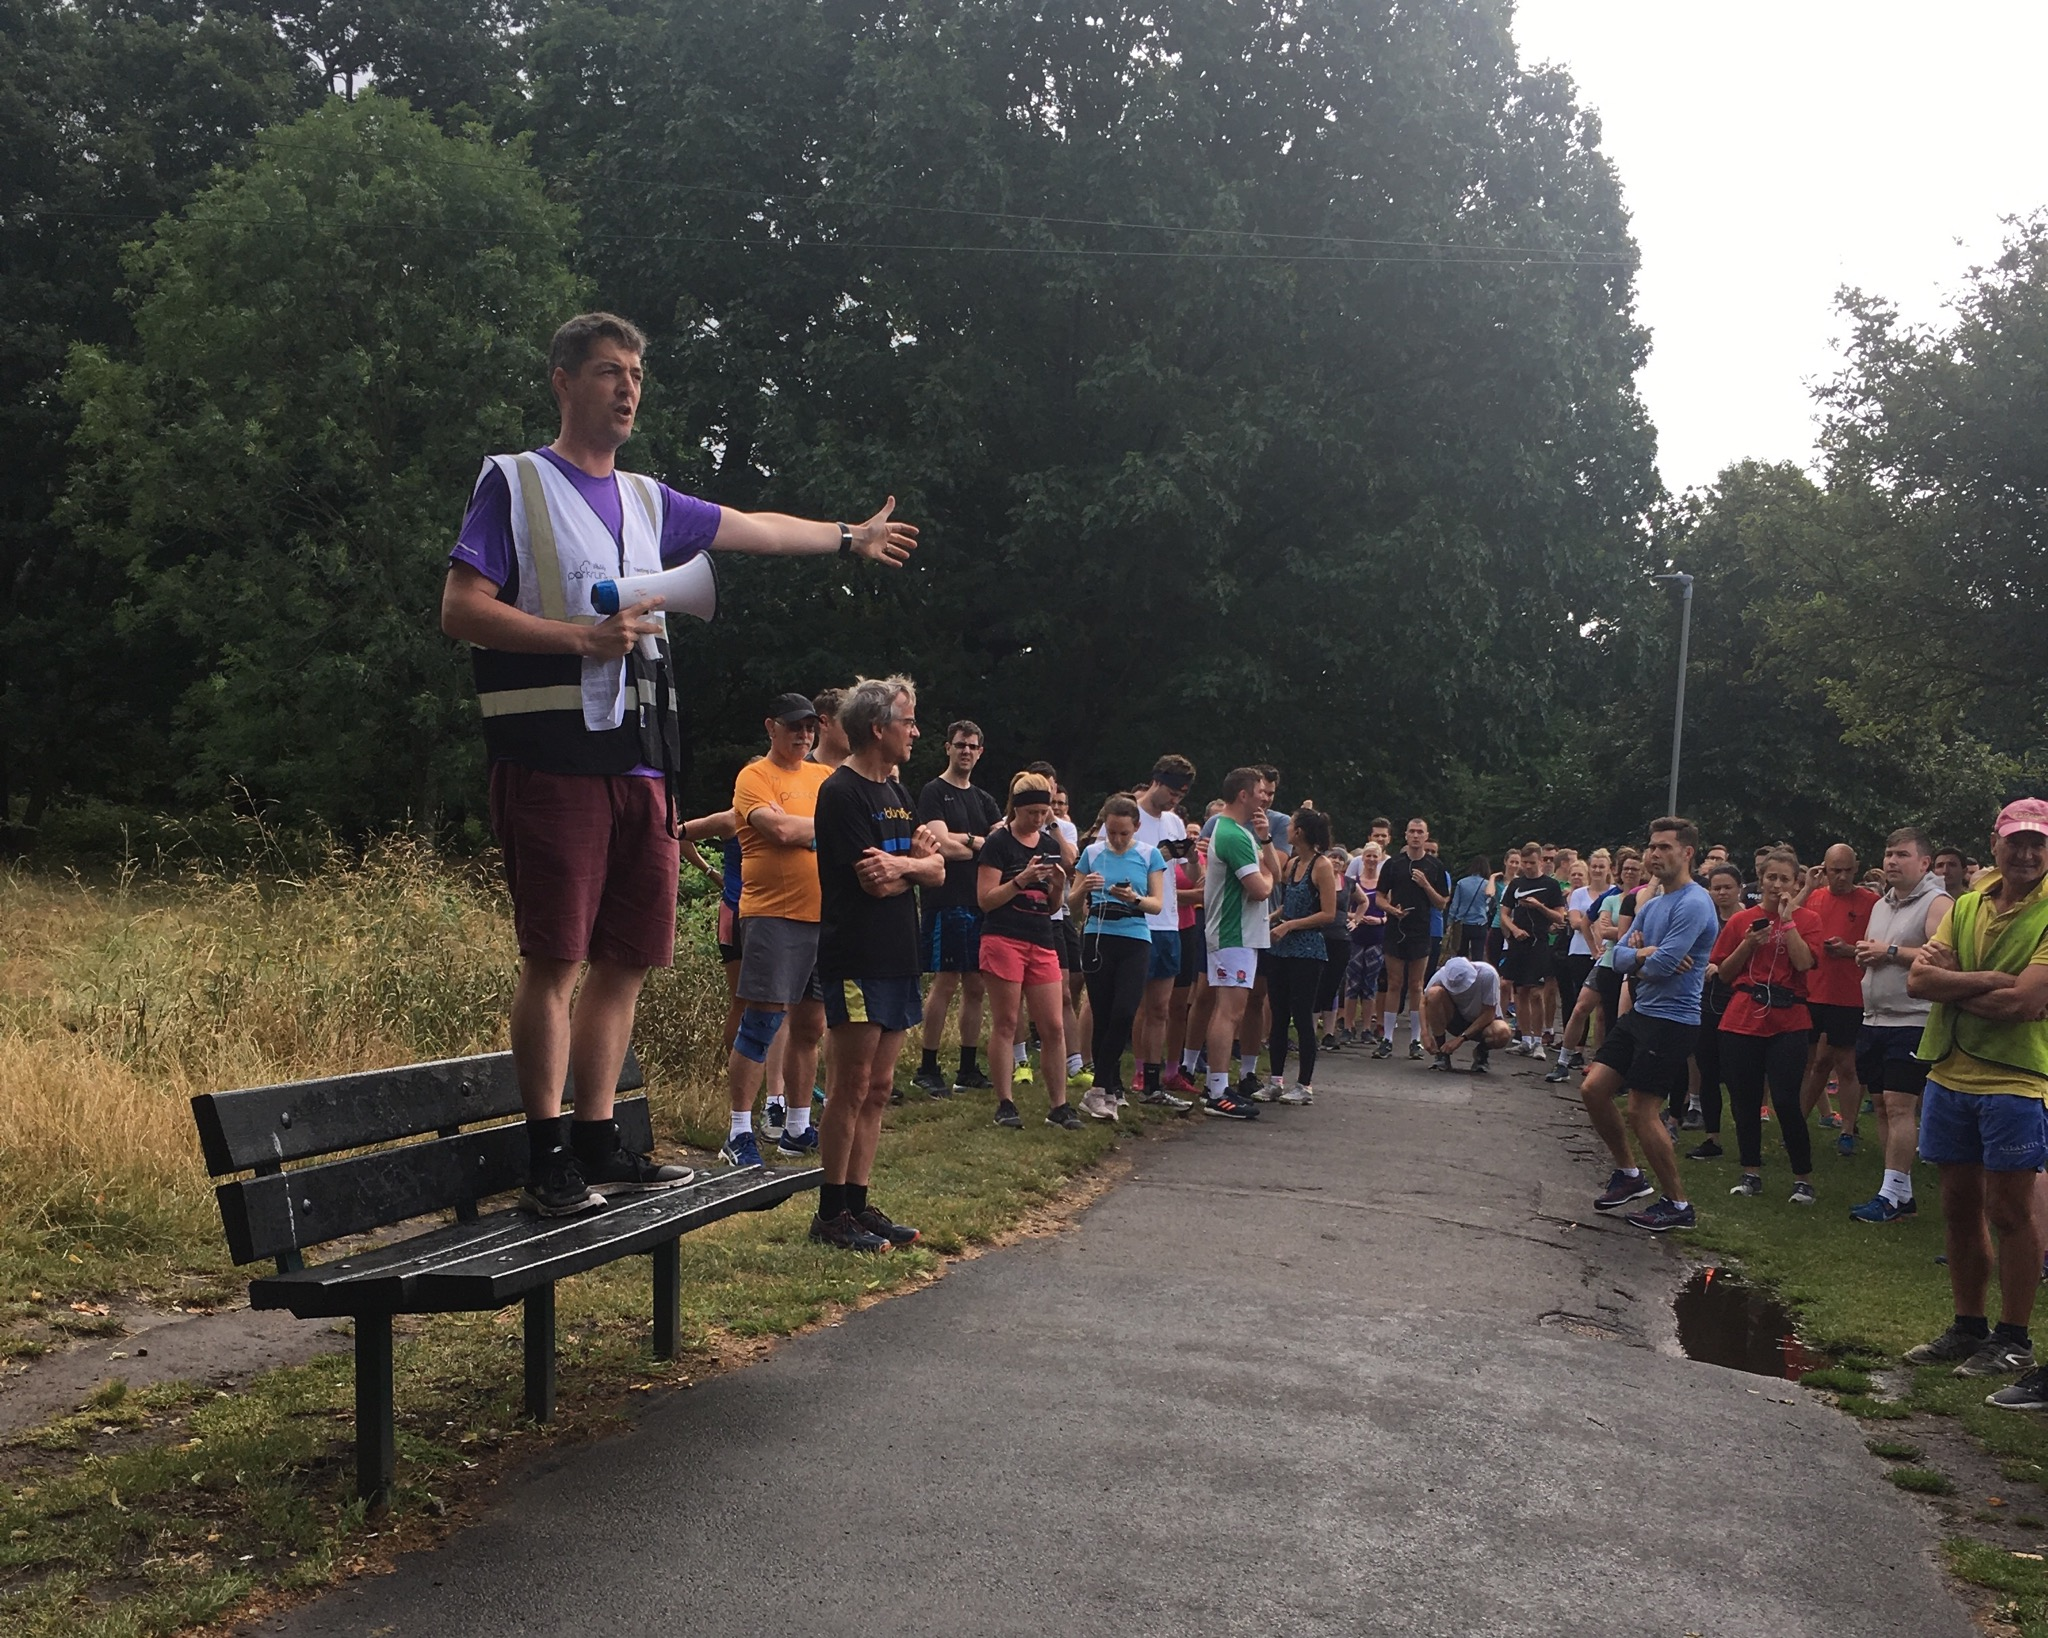 tootingcommonoffice | Tooting Common parkrun